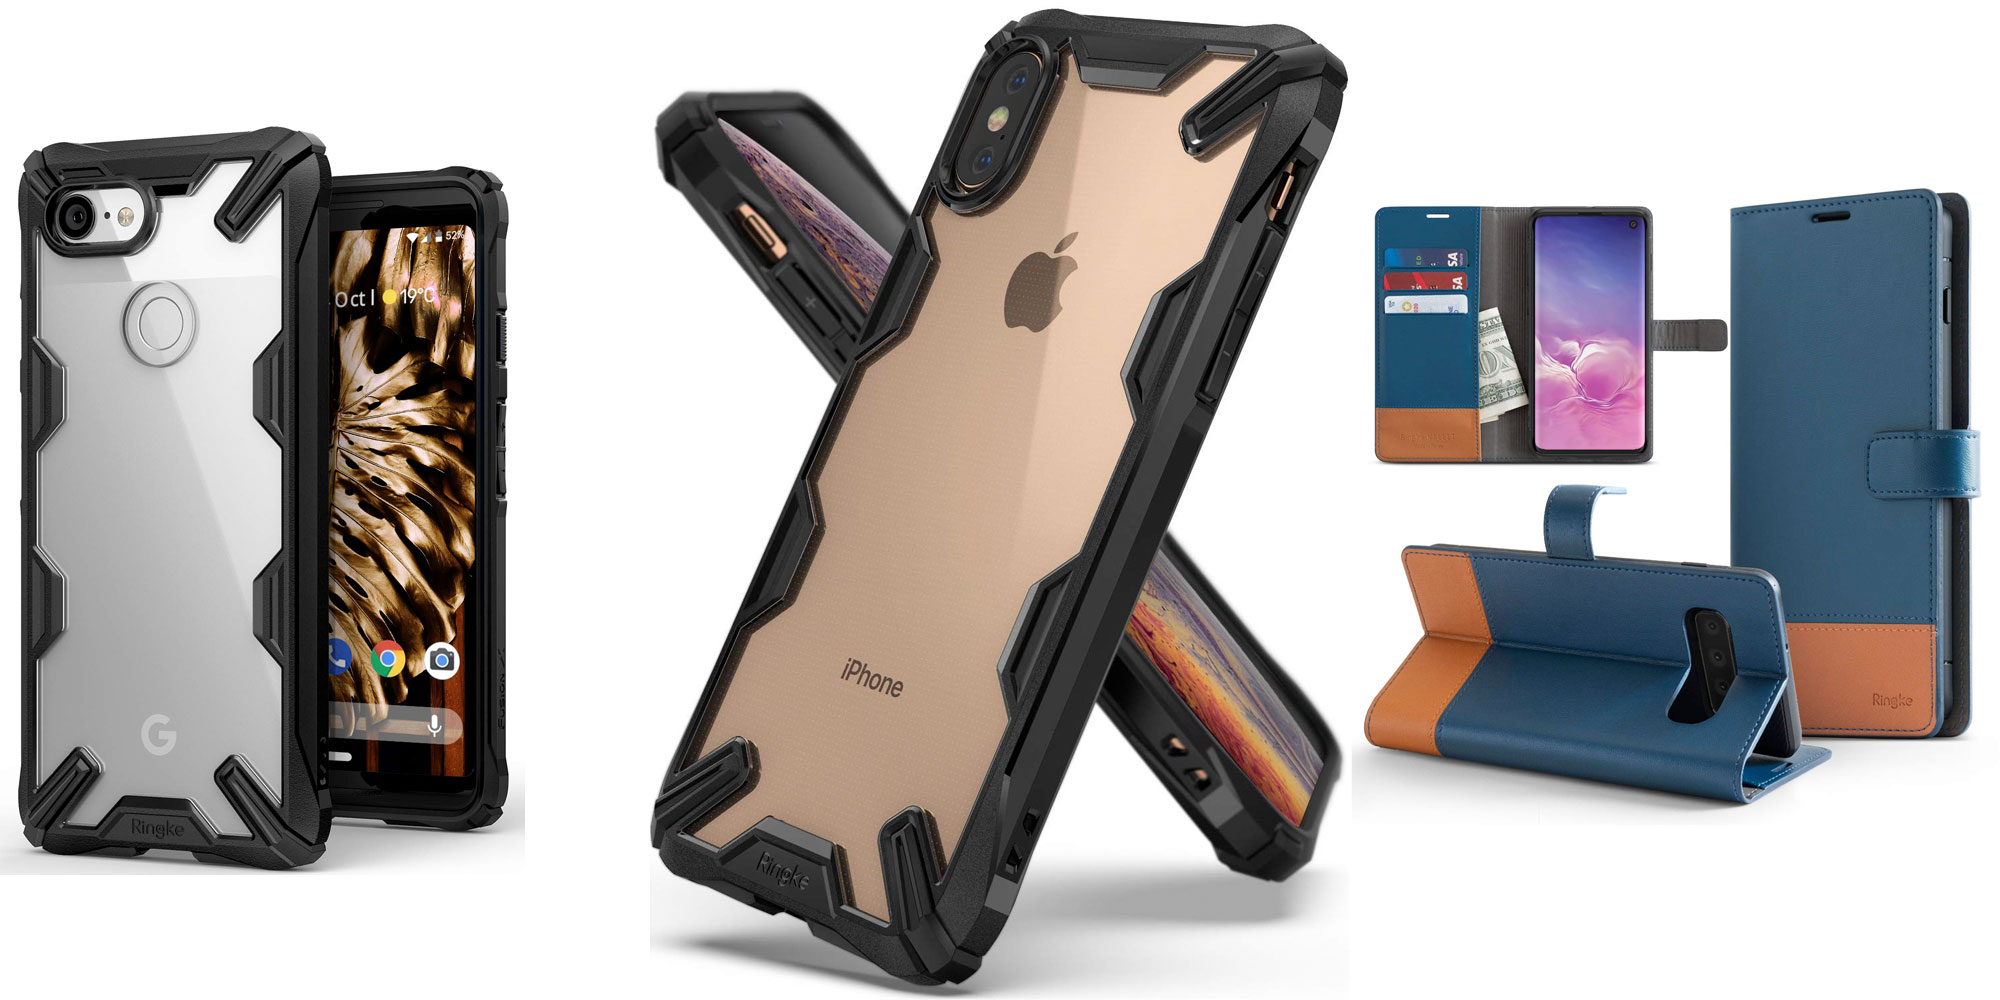 Protect your iPhone, Pixel, or Galaxy S10 w/ these budget-friendly cases for just $4